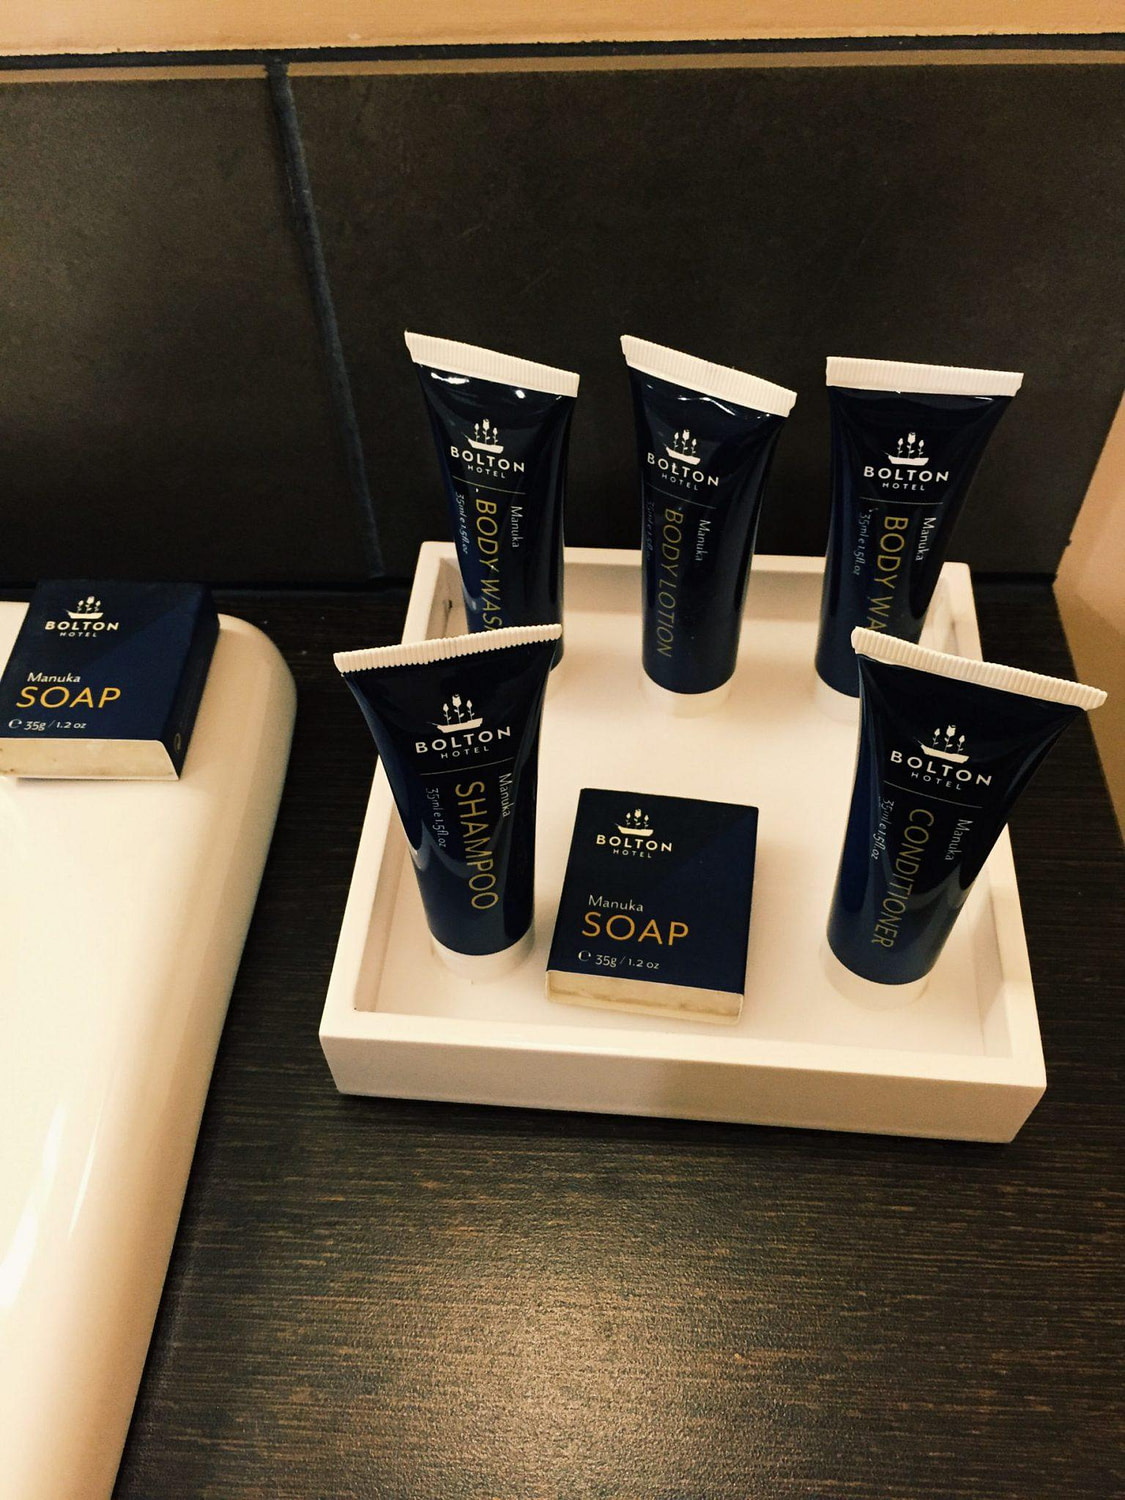 Conditioner, shampoo, body lotion and soap from The Bolton Hotel Wellington Amenities